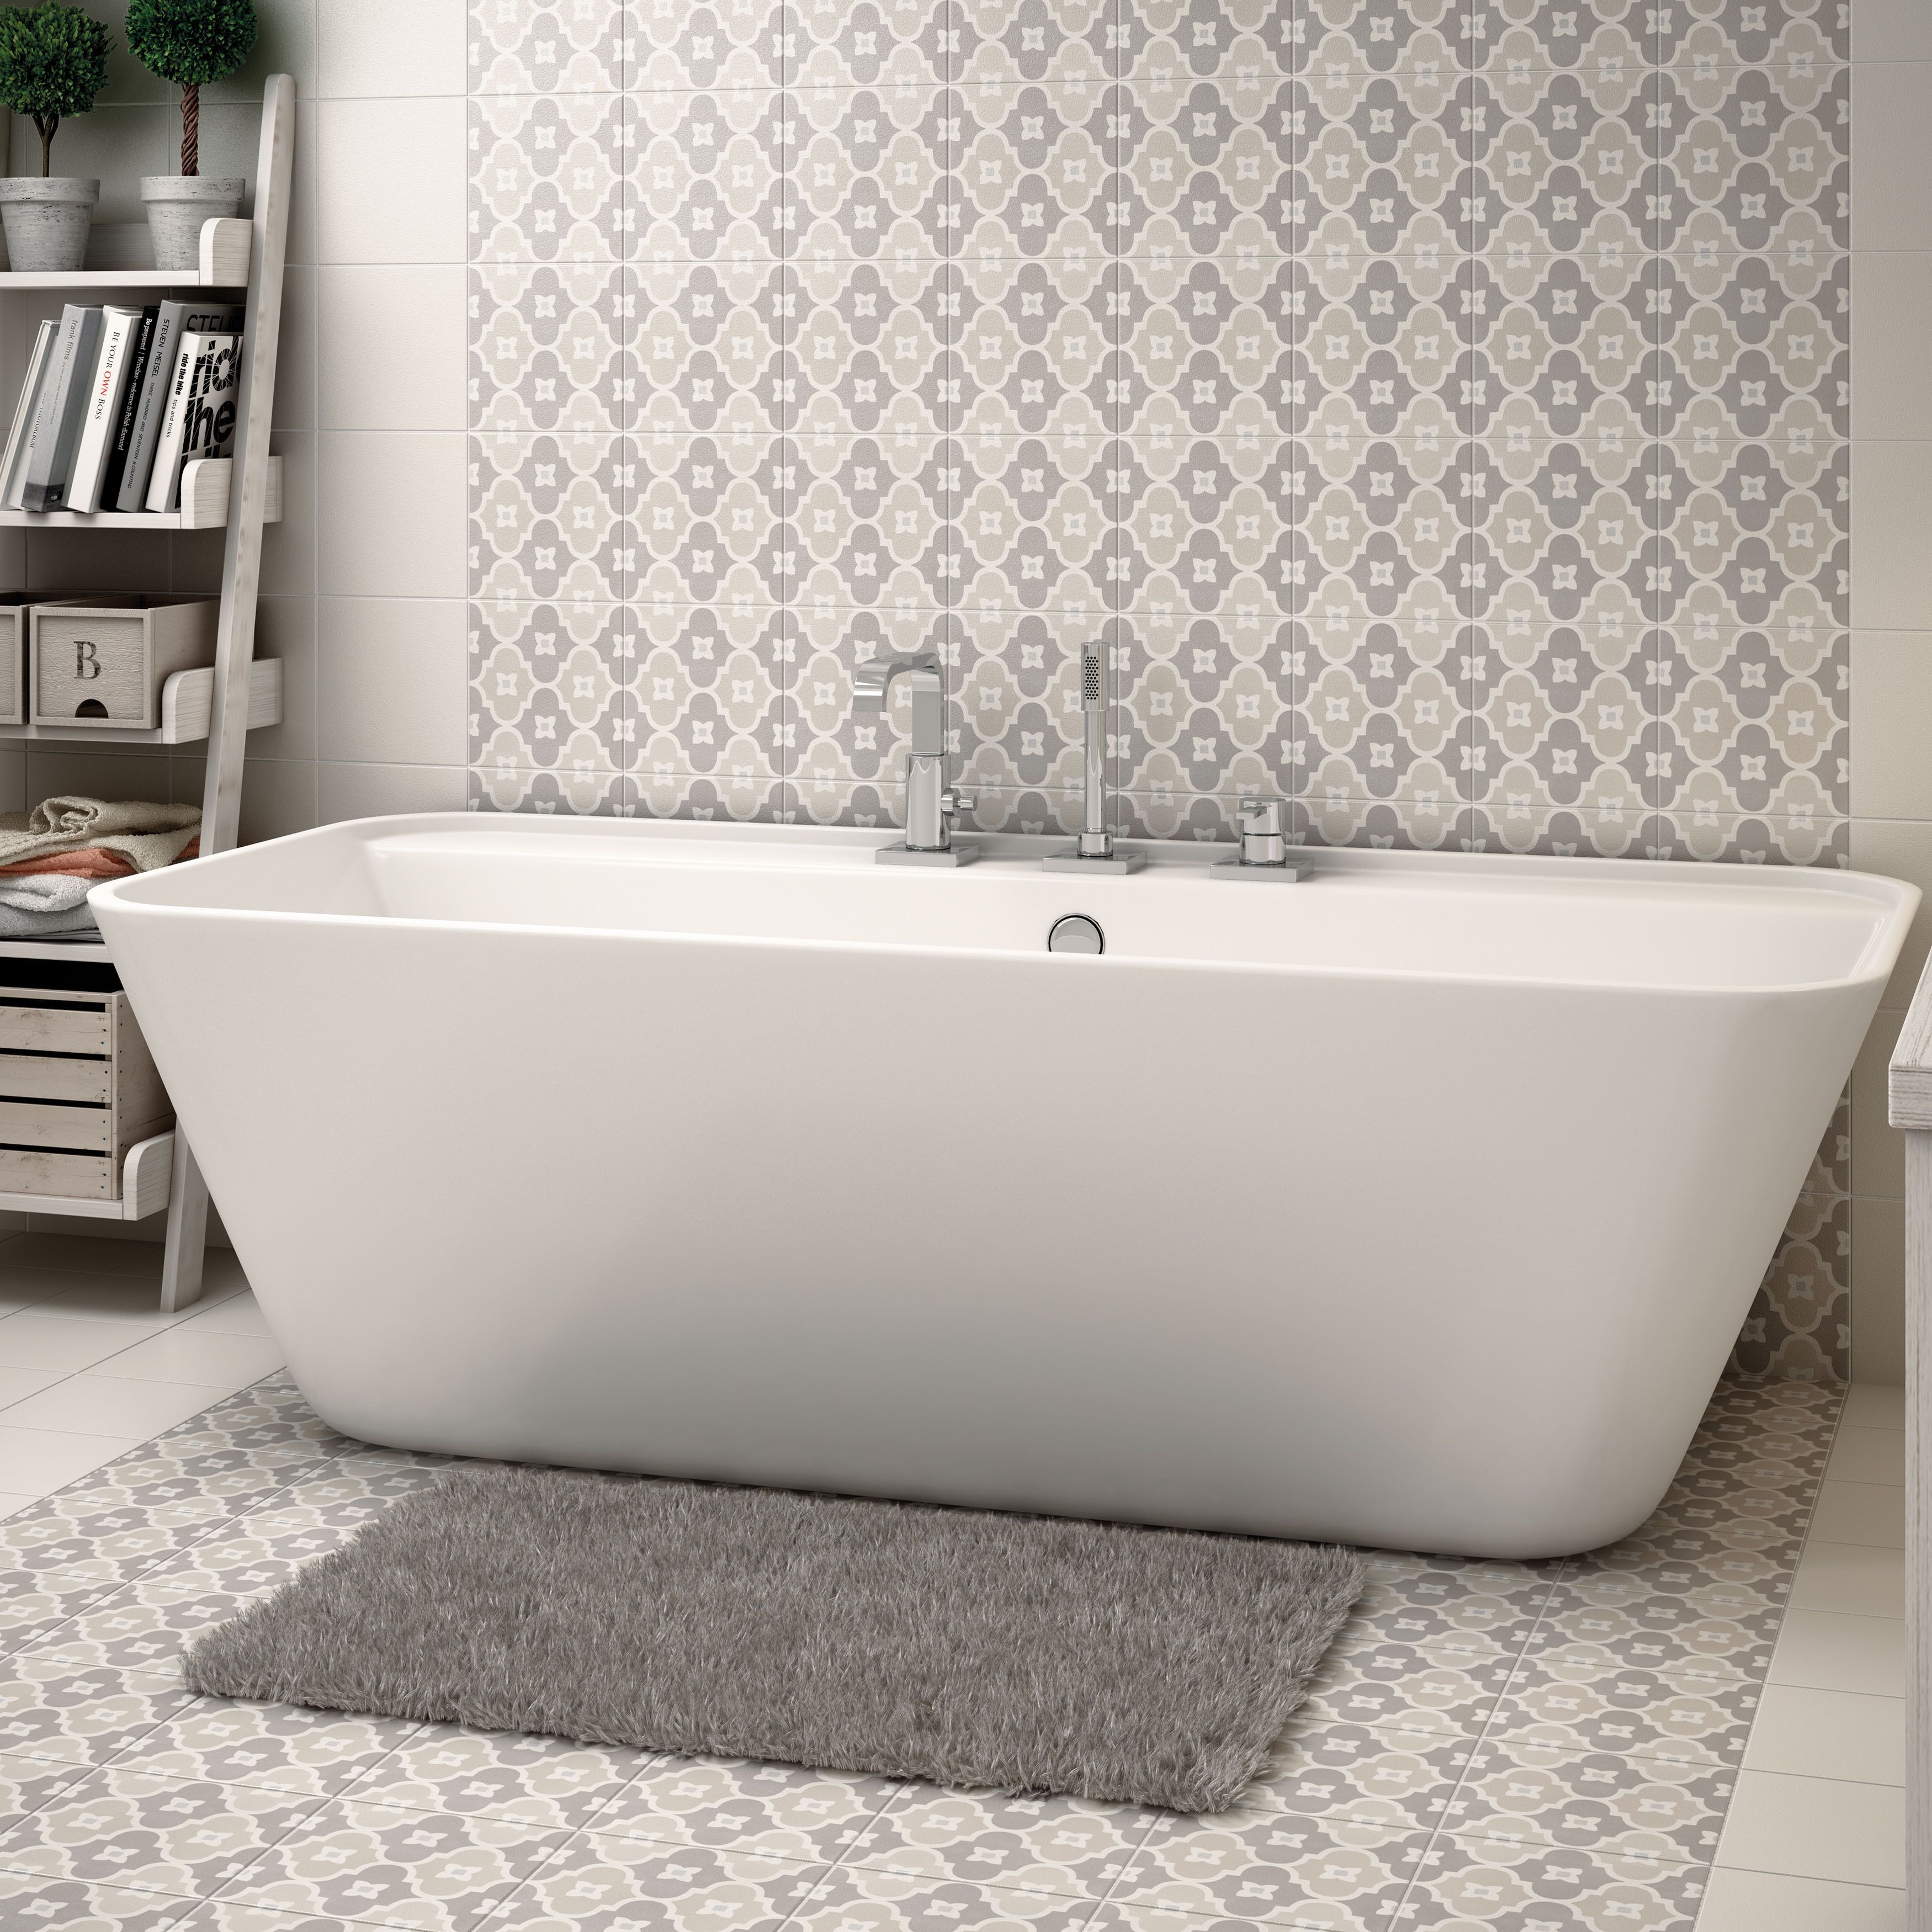 Buy somertile from overstock for everyday discount prices online beautiful modern contemporary bathroom in pastel grey with wall and floor tiles by equipe ceramicas dailygadgetfo Images